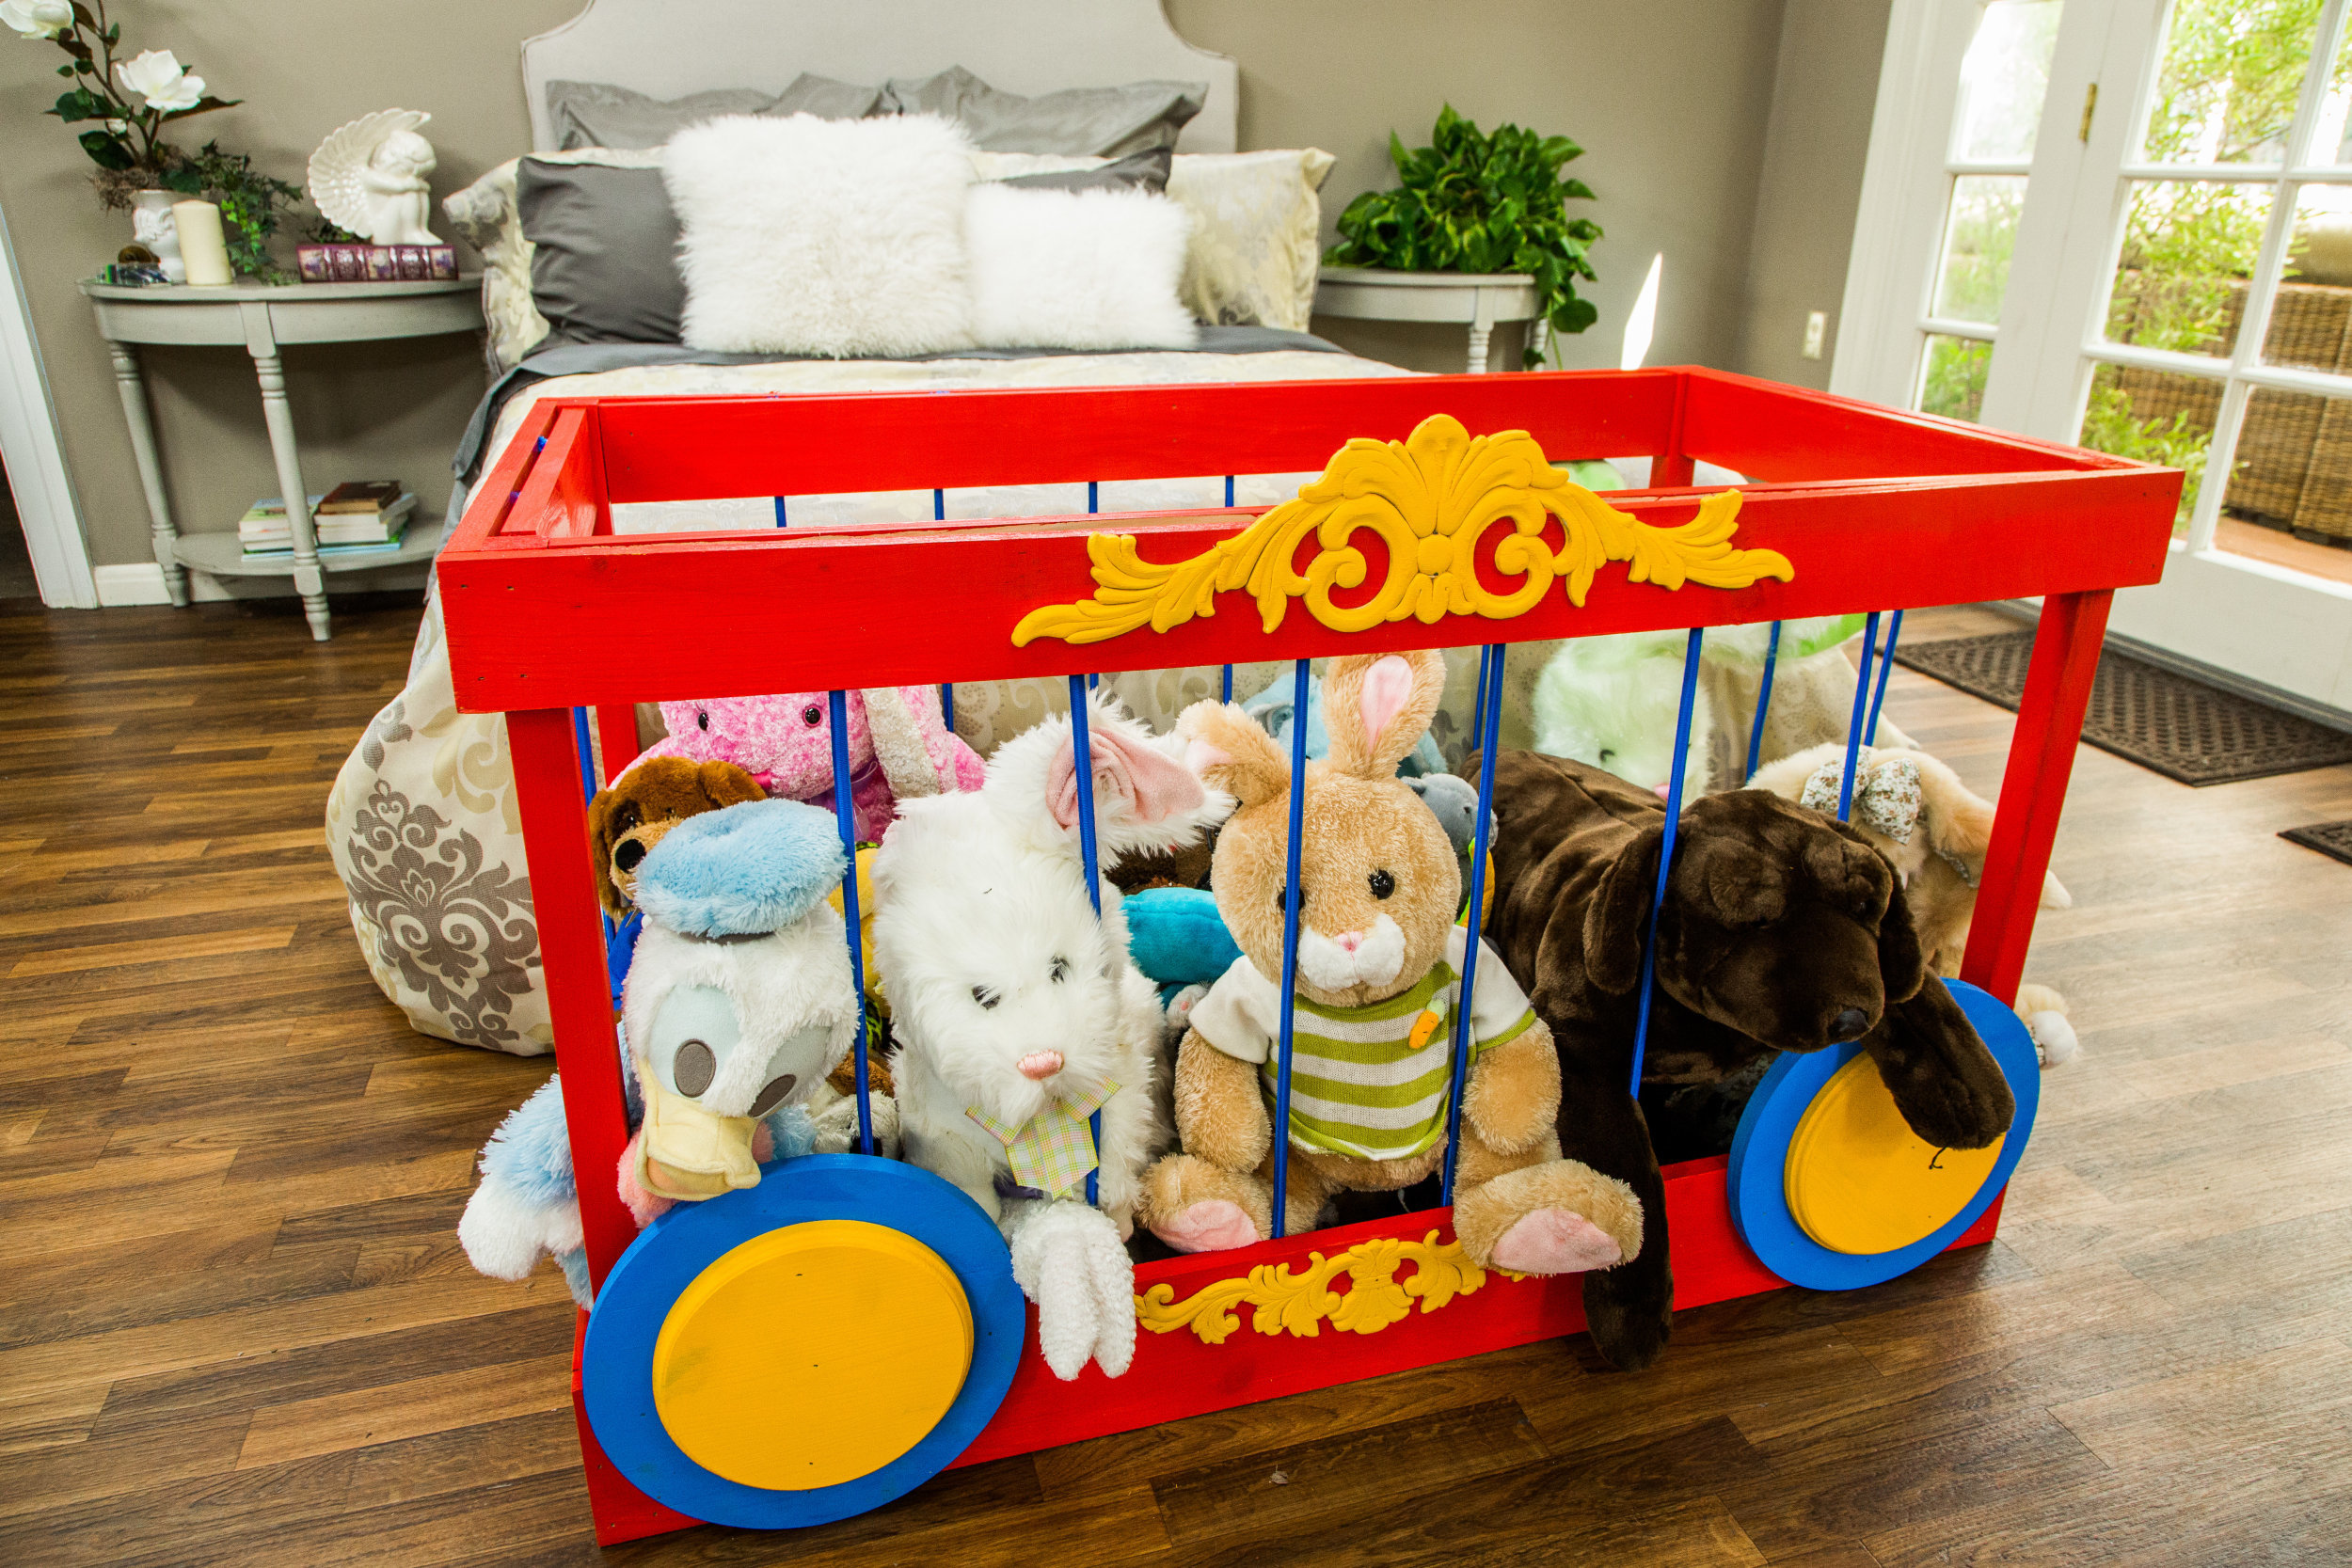 How To Diy Stuffed Animal Storage Home Amp Family